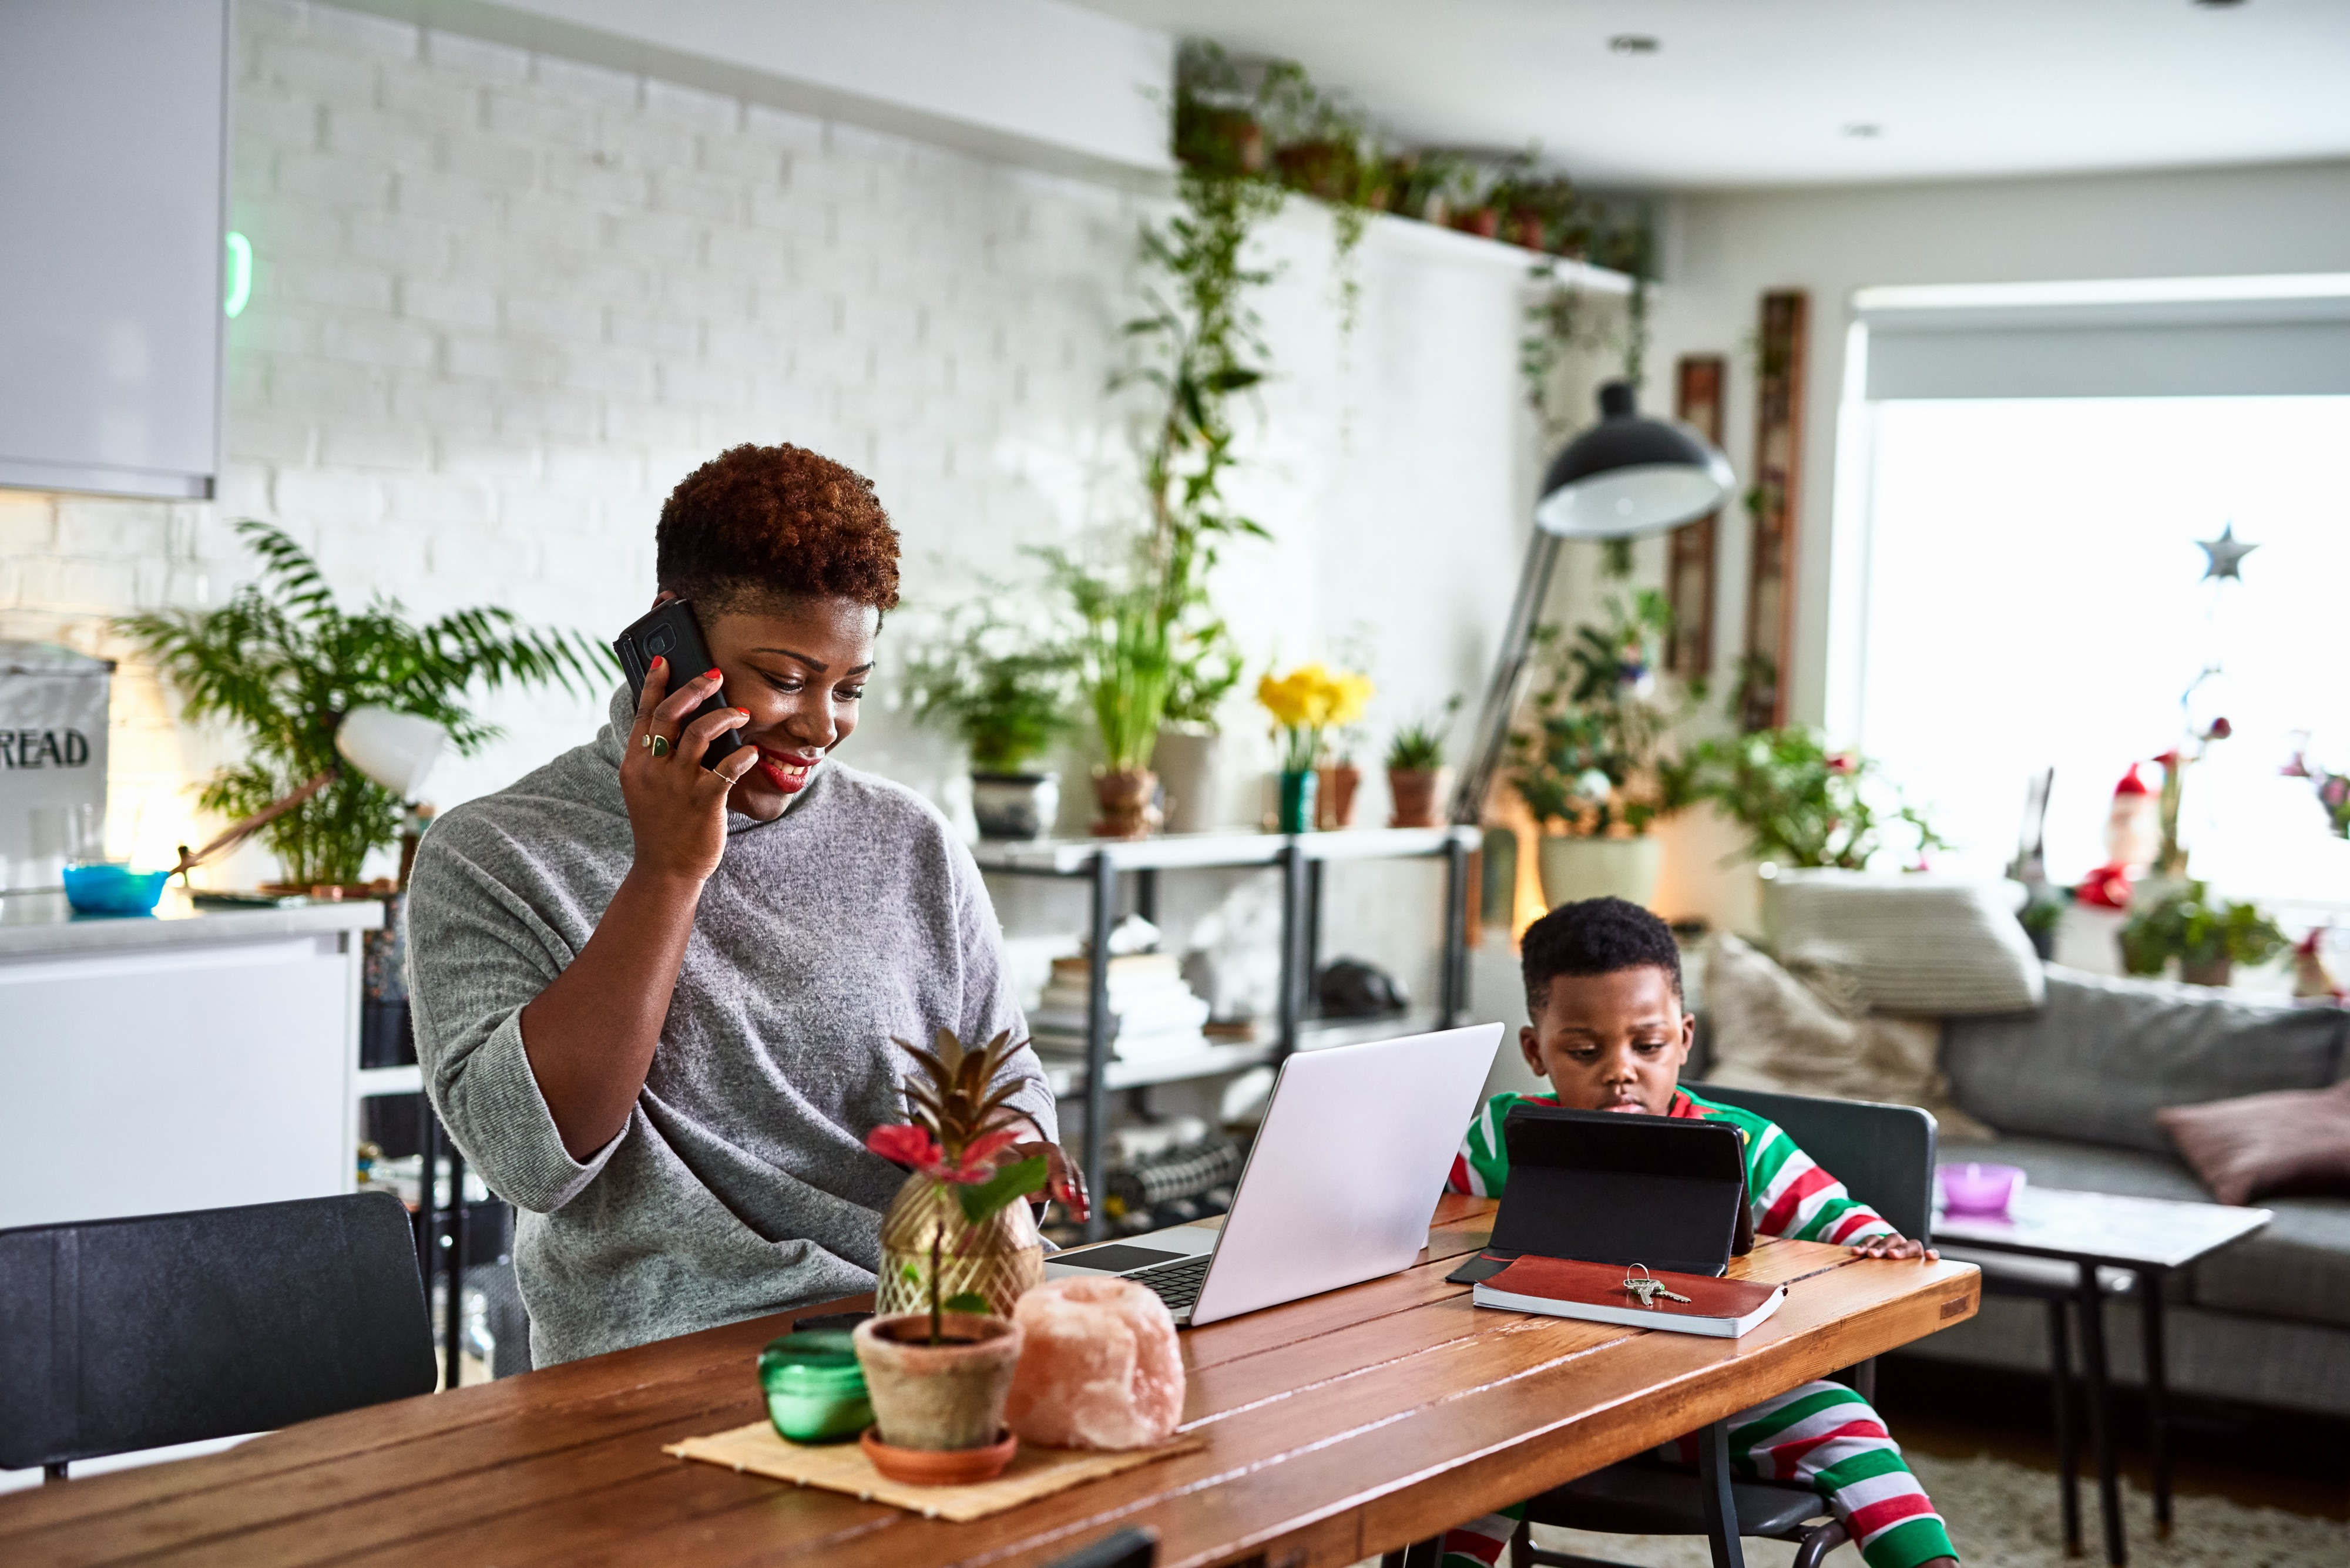 An adult woman on the phone looking at her laptop on the dining table while her son uses a digital tablet.